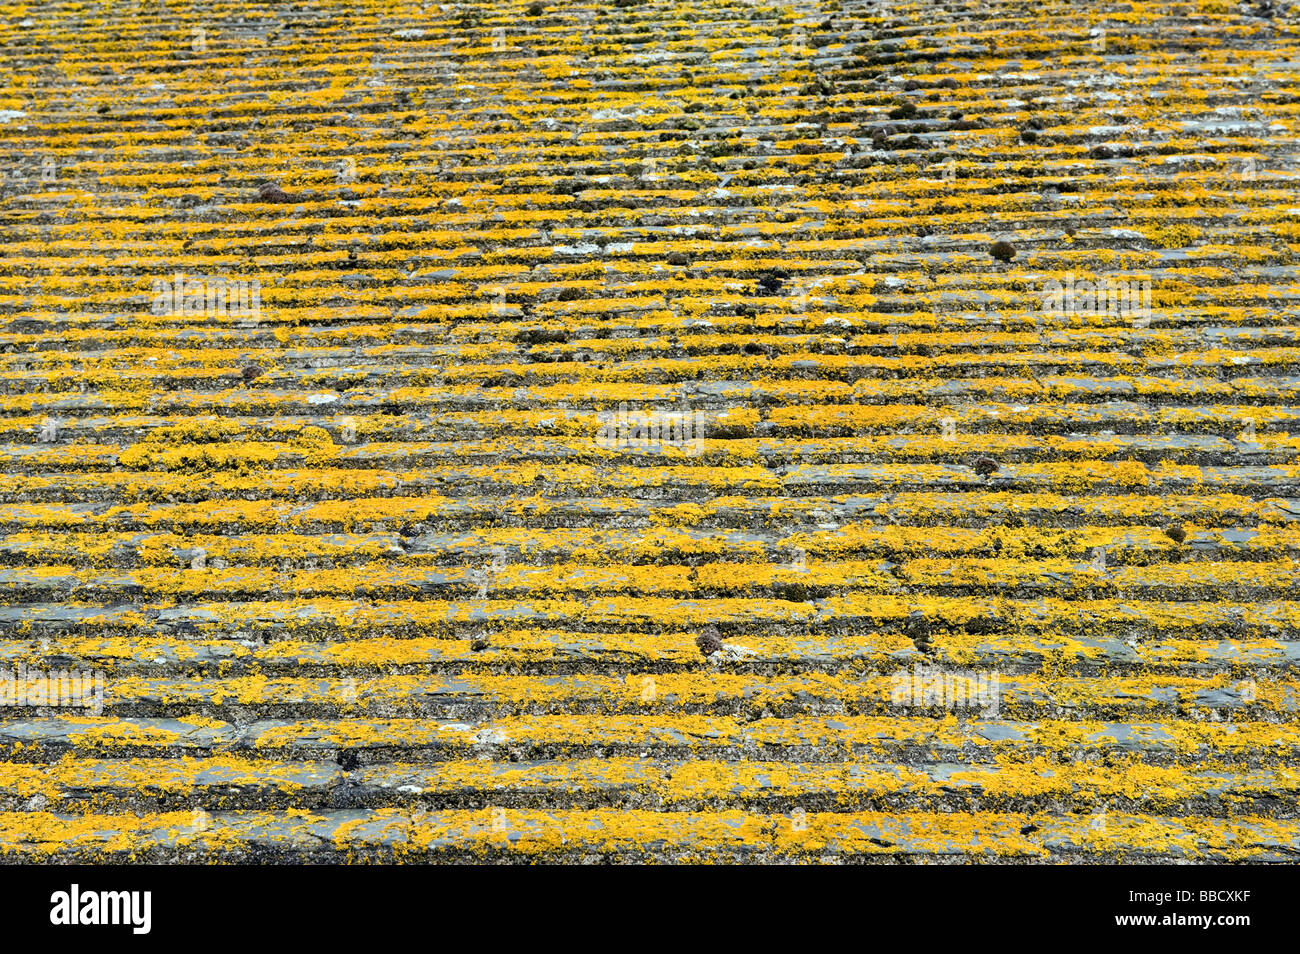 Yellow algae on roof tiles - Stock Image